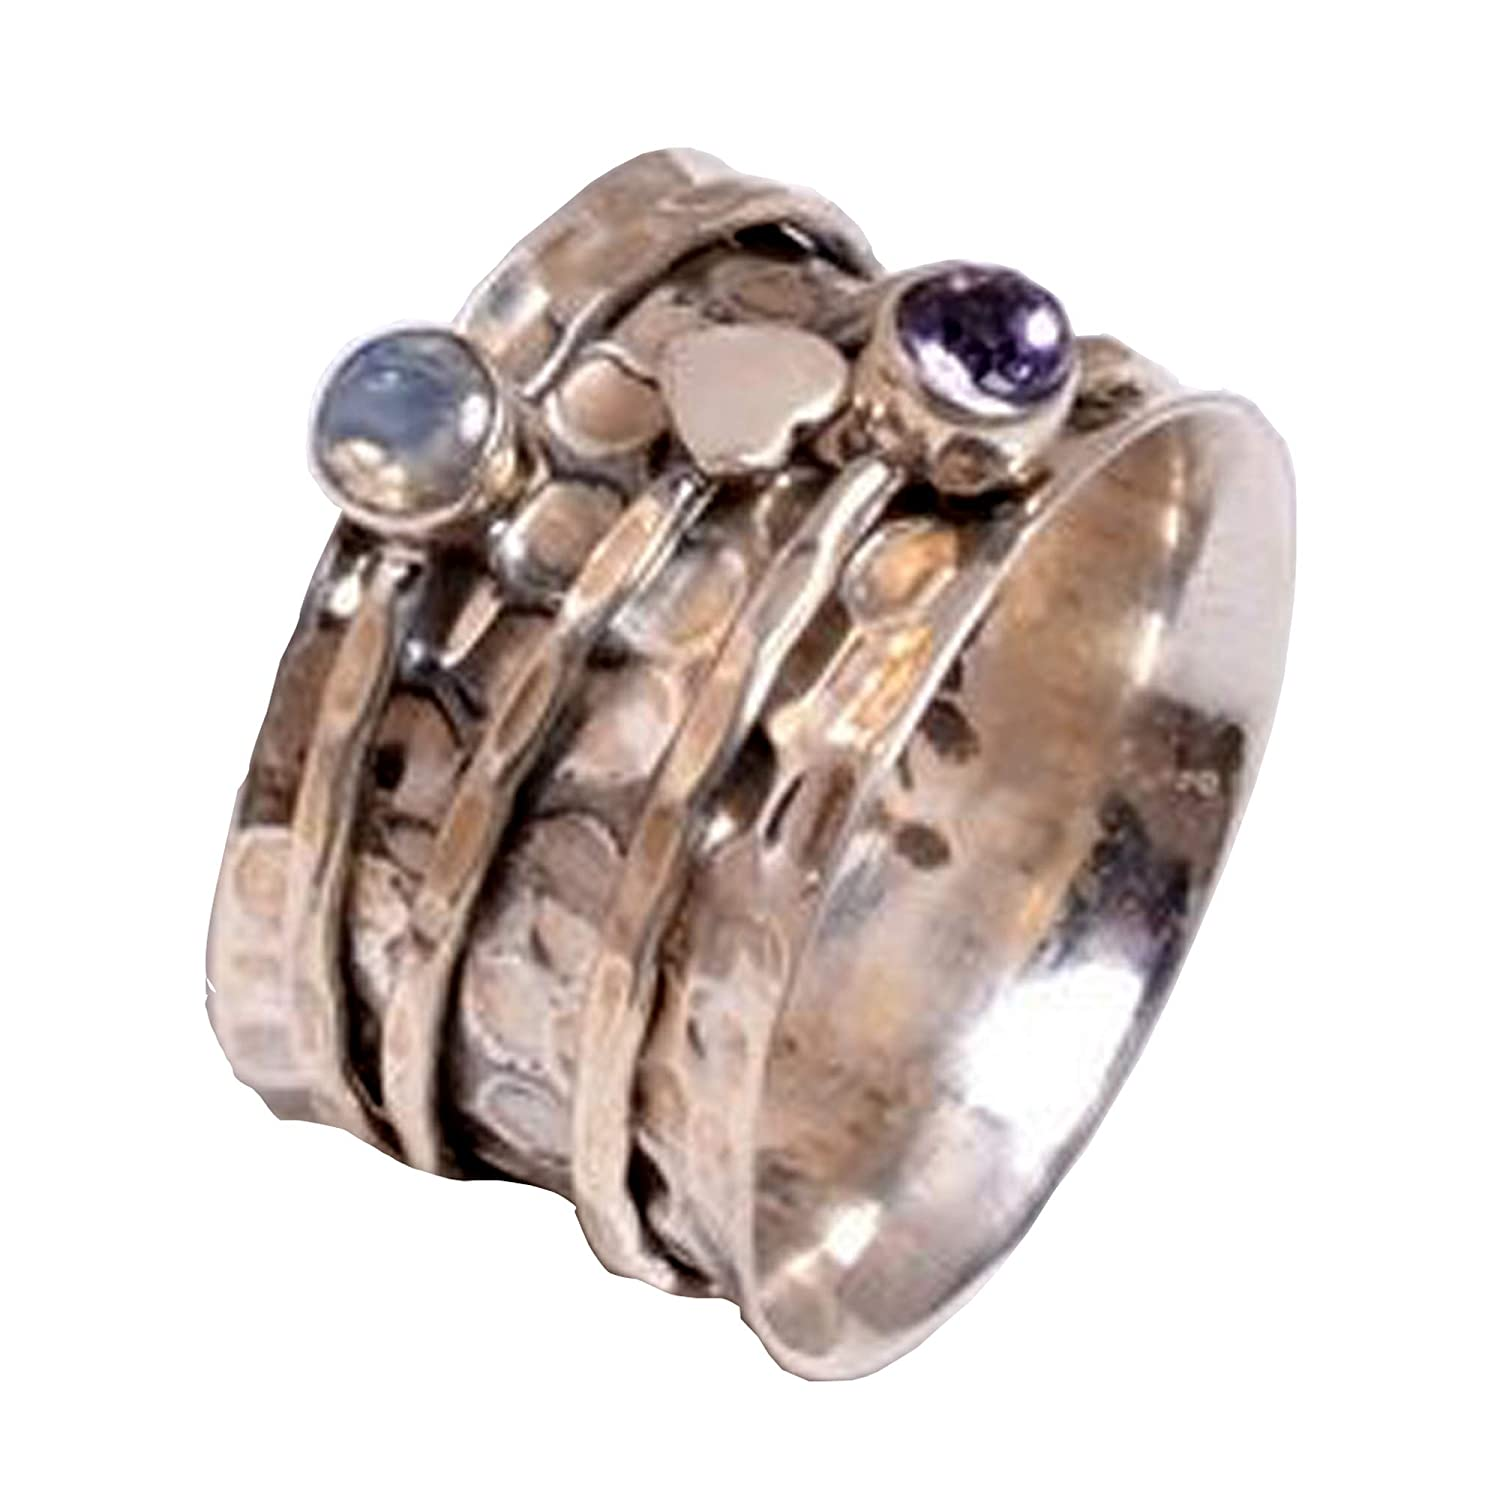 Amethyst Stone Bestselling Ring,Band Spinner Ring Amethyst AAA+Quality Boho Silver Ring,925-Sterling Silver Spinner Ring,Cut Stone Ring